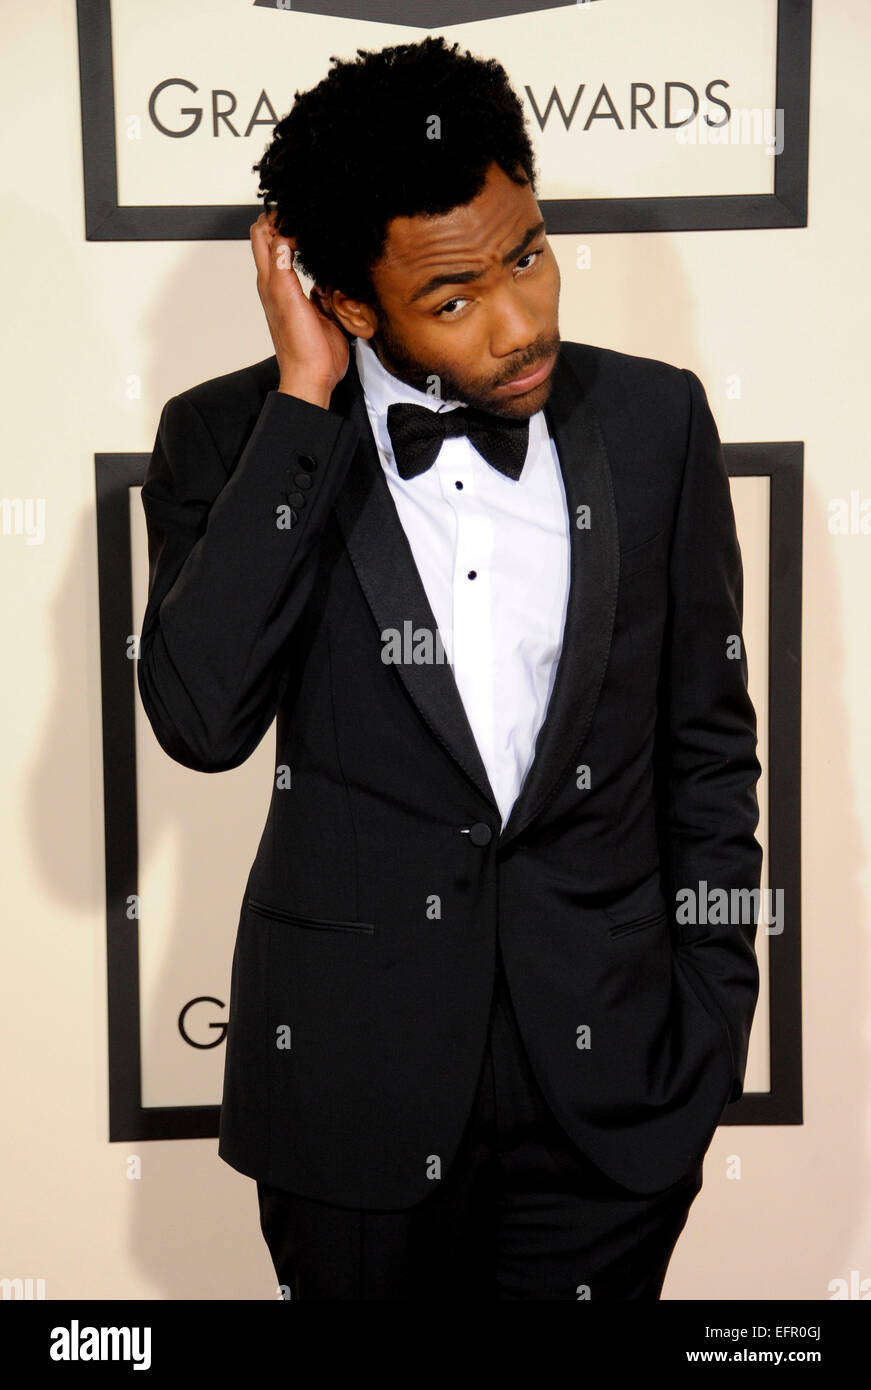 Los Angeles, USA. 08th Feb, 2015. Donald Glover  57.Annual Grammy Awards 2015   08/02/2015. Credit:  dpa picture - Stock Image